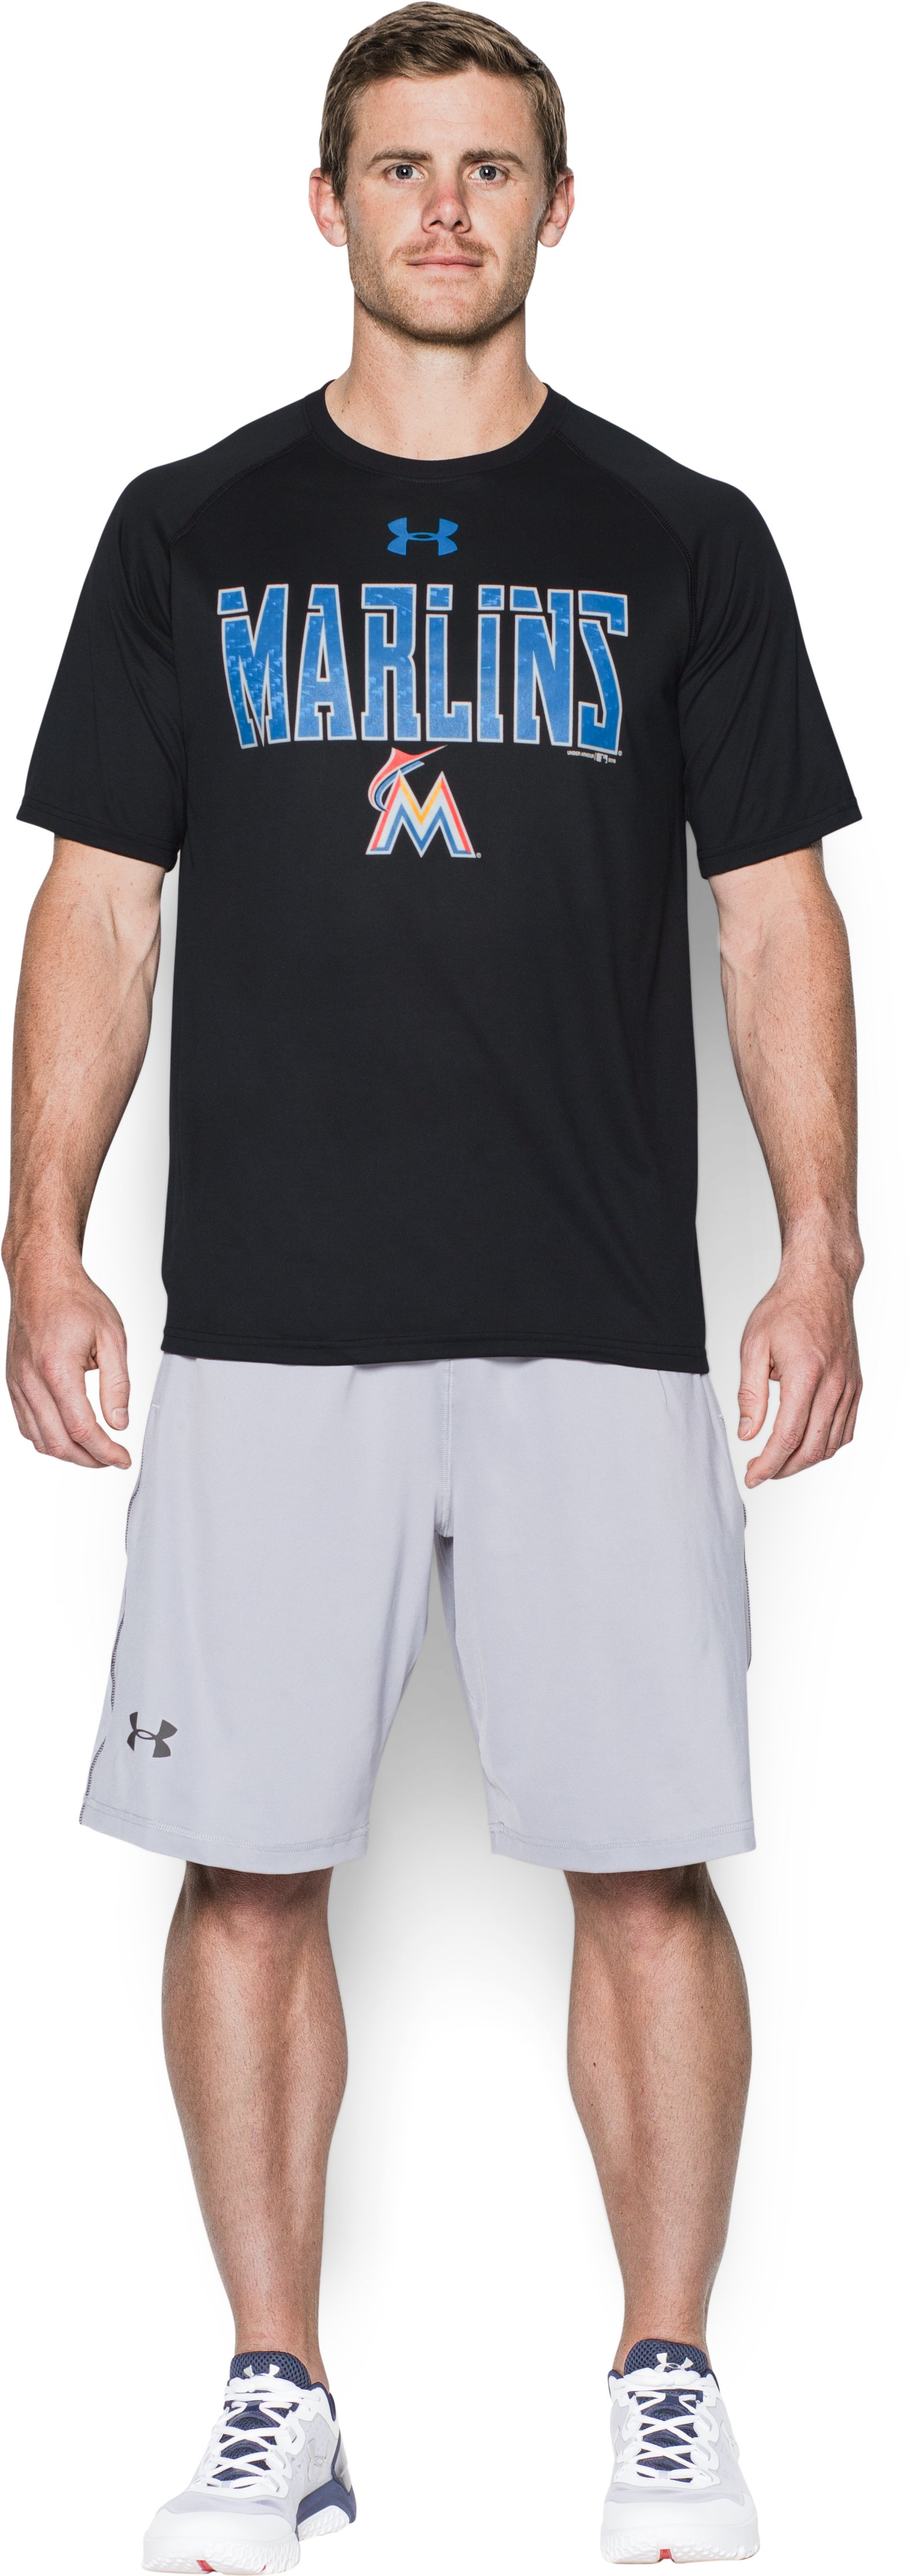 Men's Miami Marlins Team Tech™ T-Shirt, Black